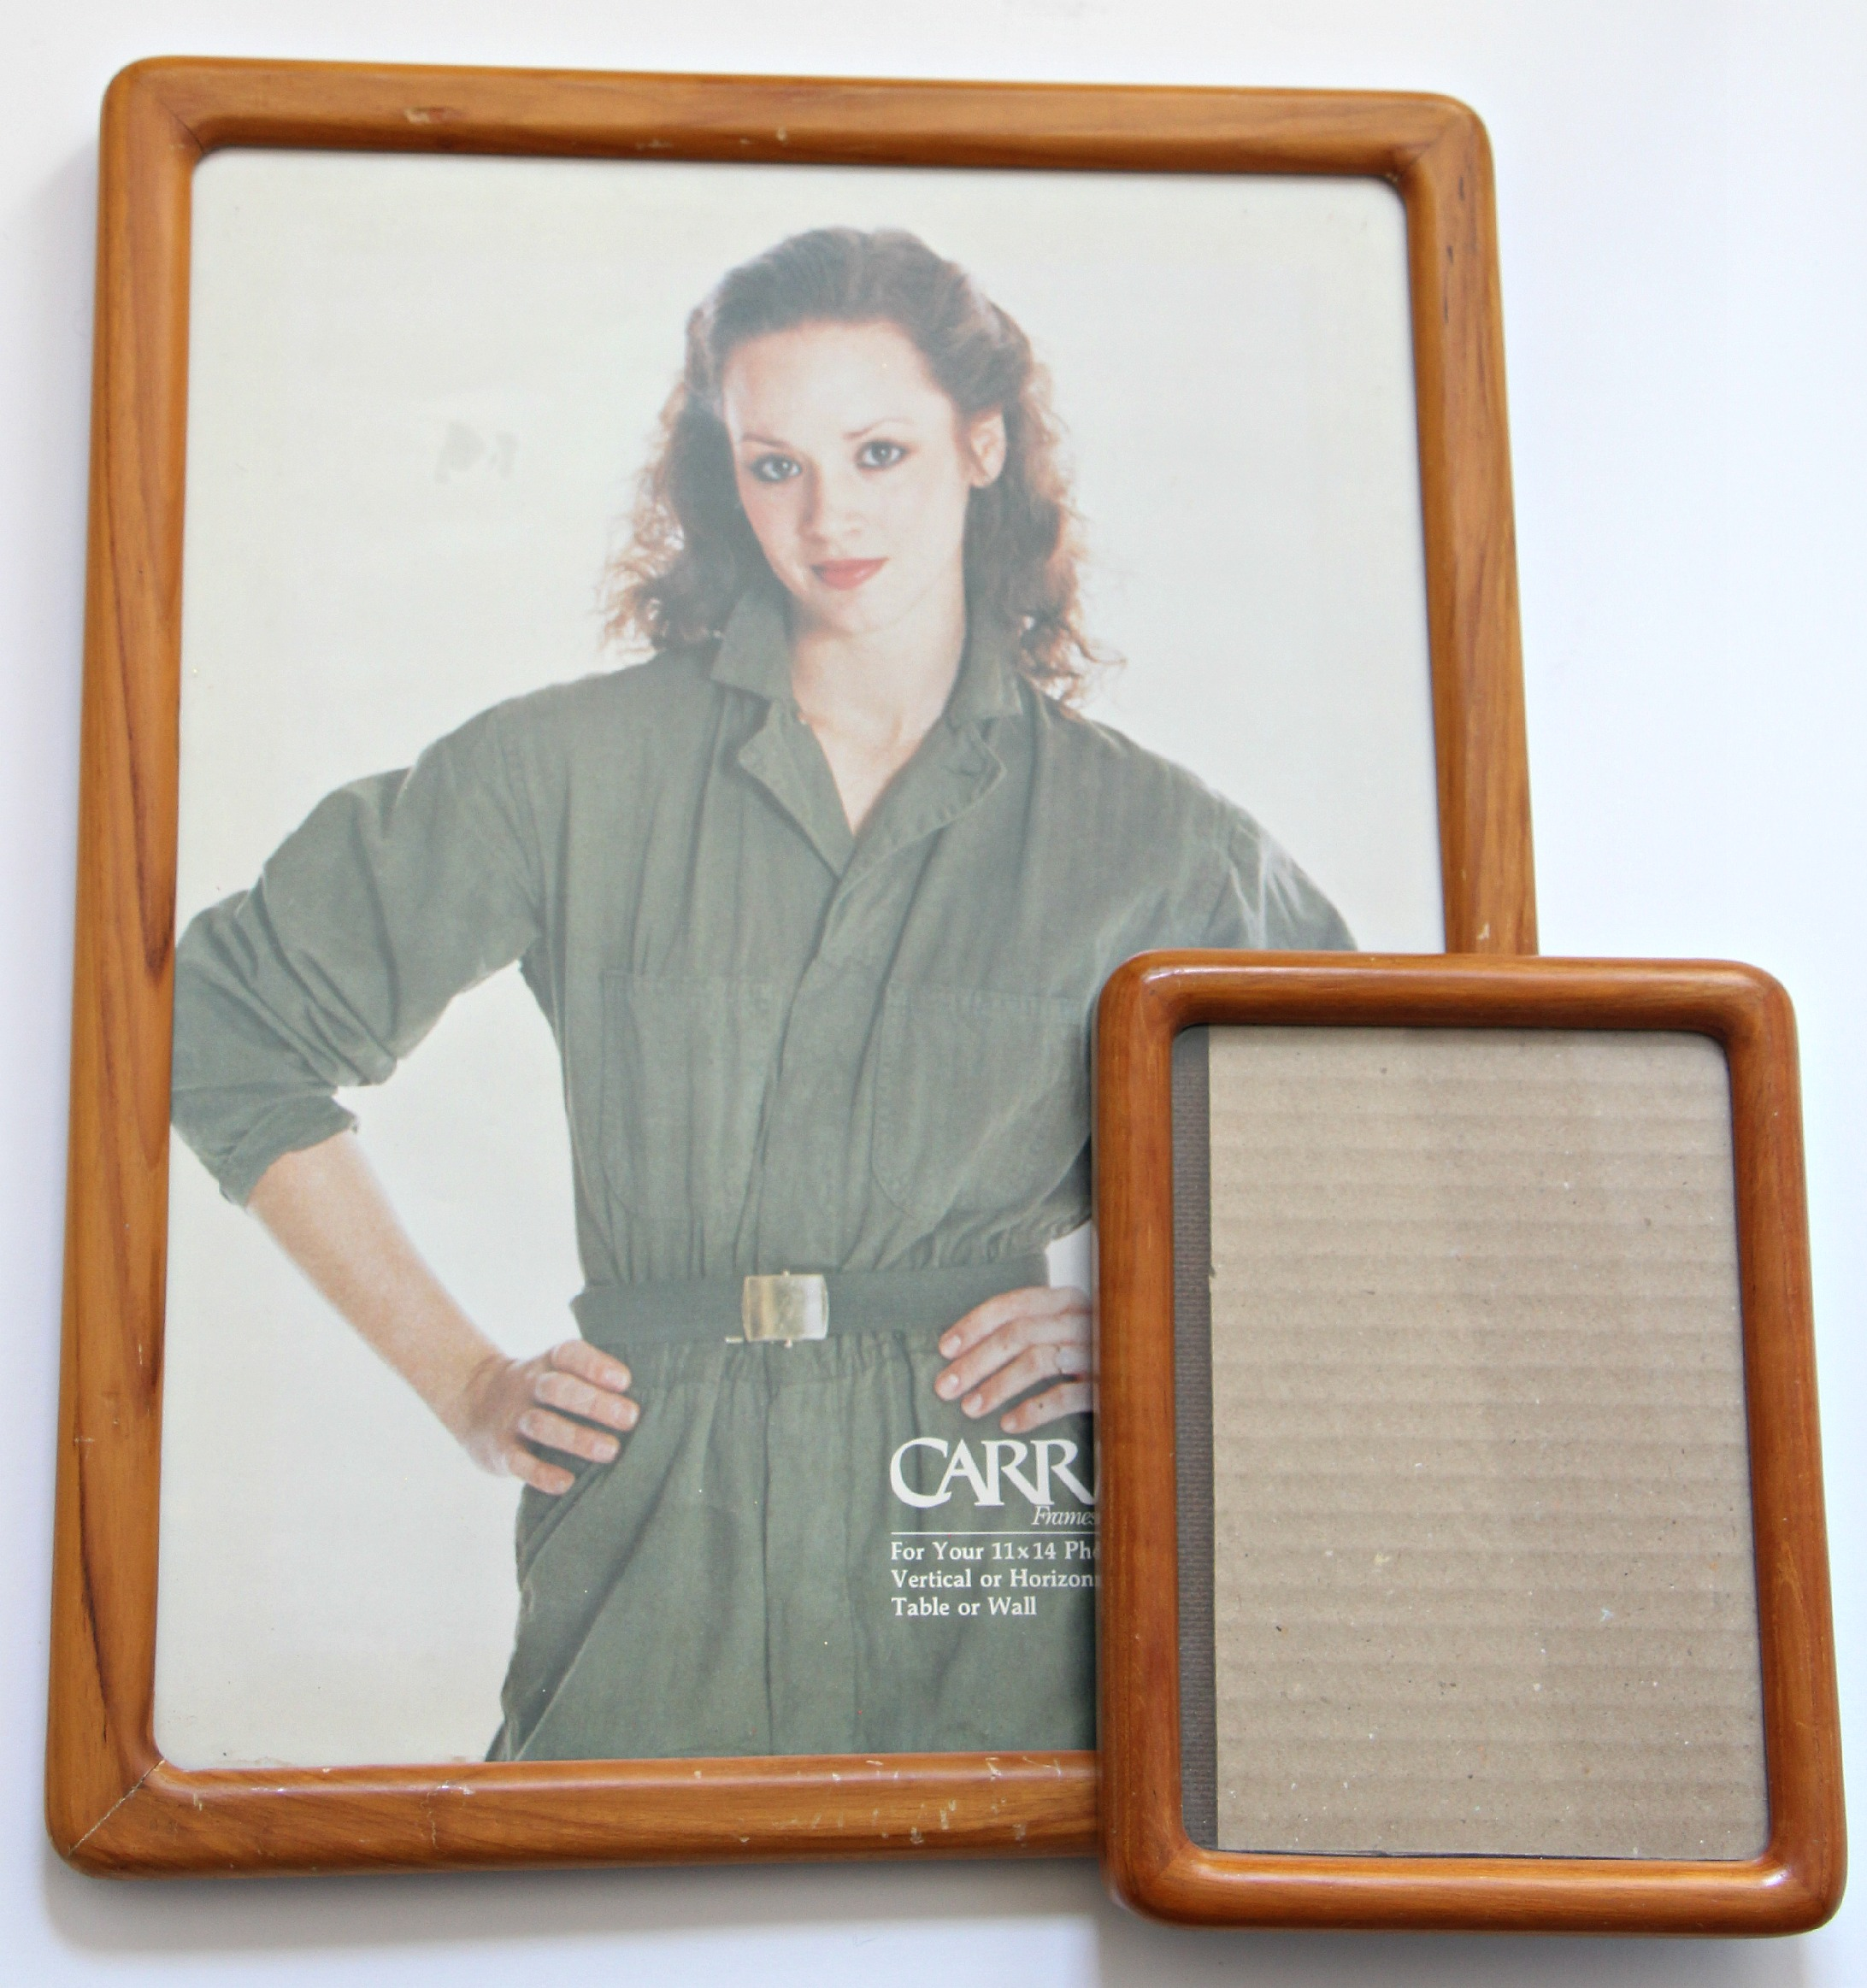 How to thrift picture frames tips for finding pieces for a round edge frame thrifted frames this is our bliss jeuxipadfo Image collections